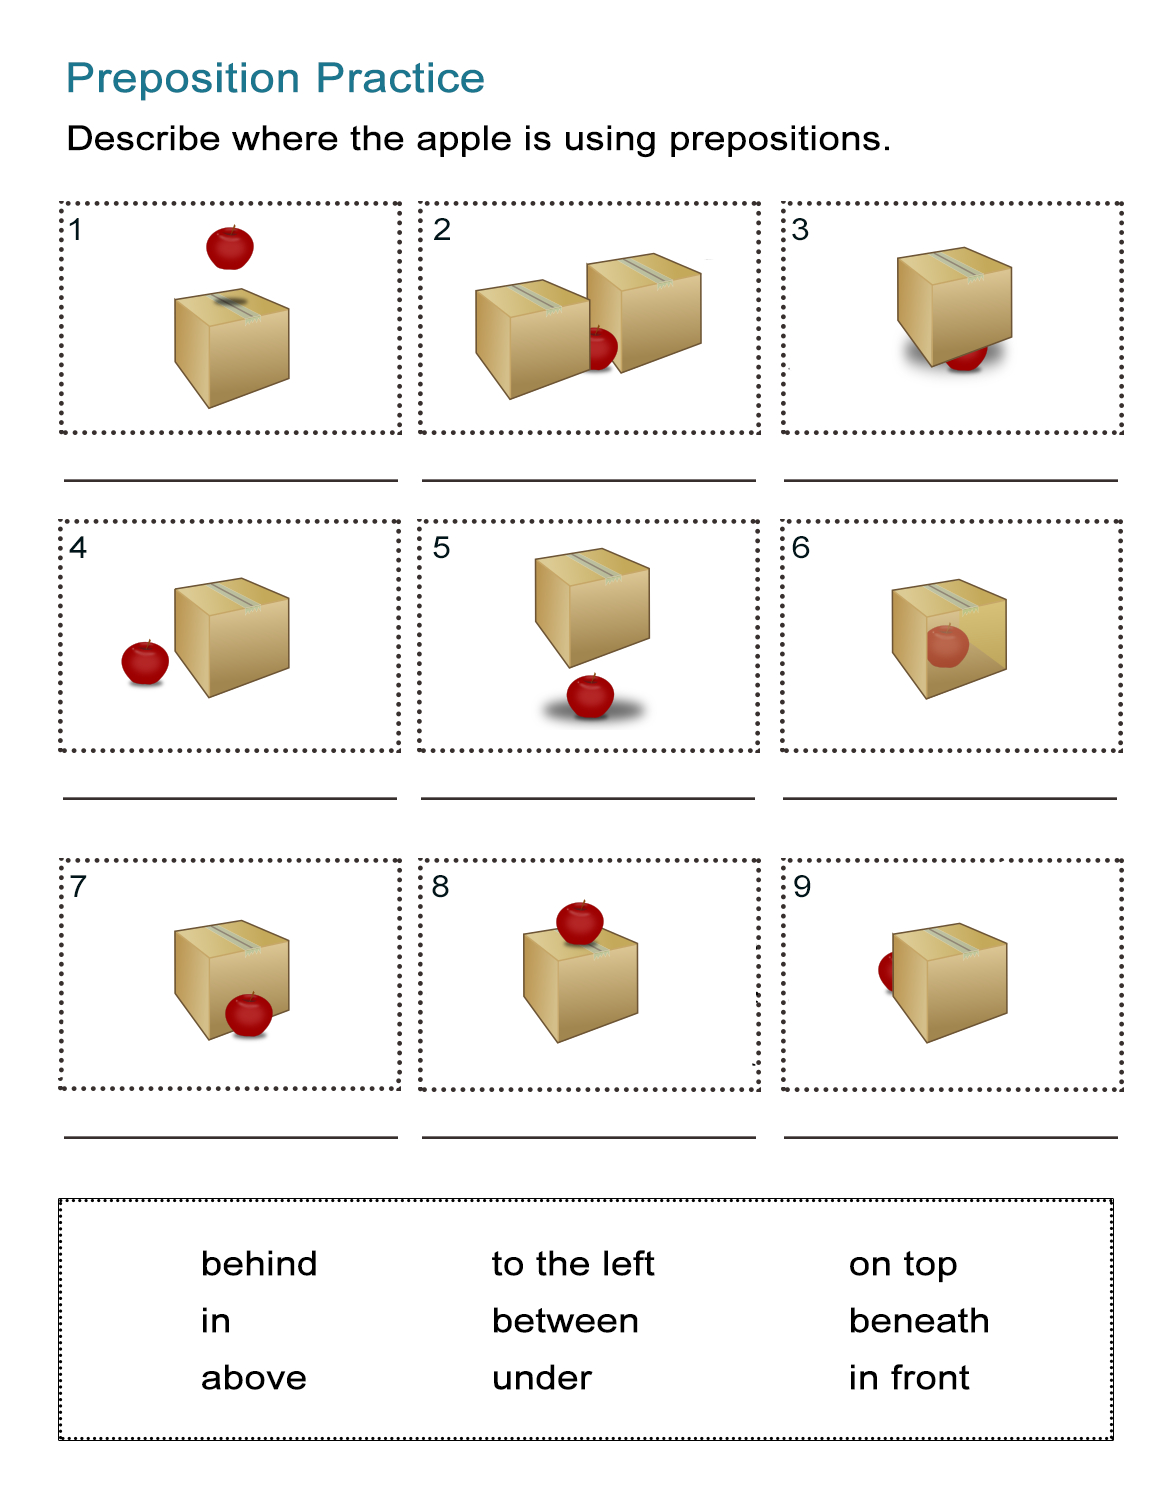 Prepositions Of Location Worksheet: Where Is The Apple? - All Esl   Free Printable Worksheets For Prepositions